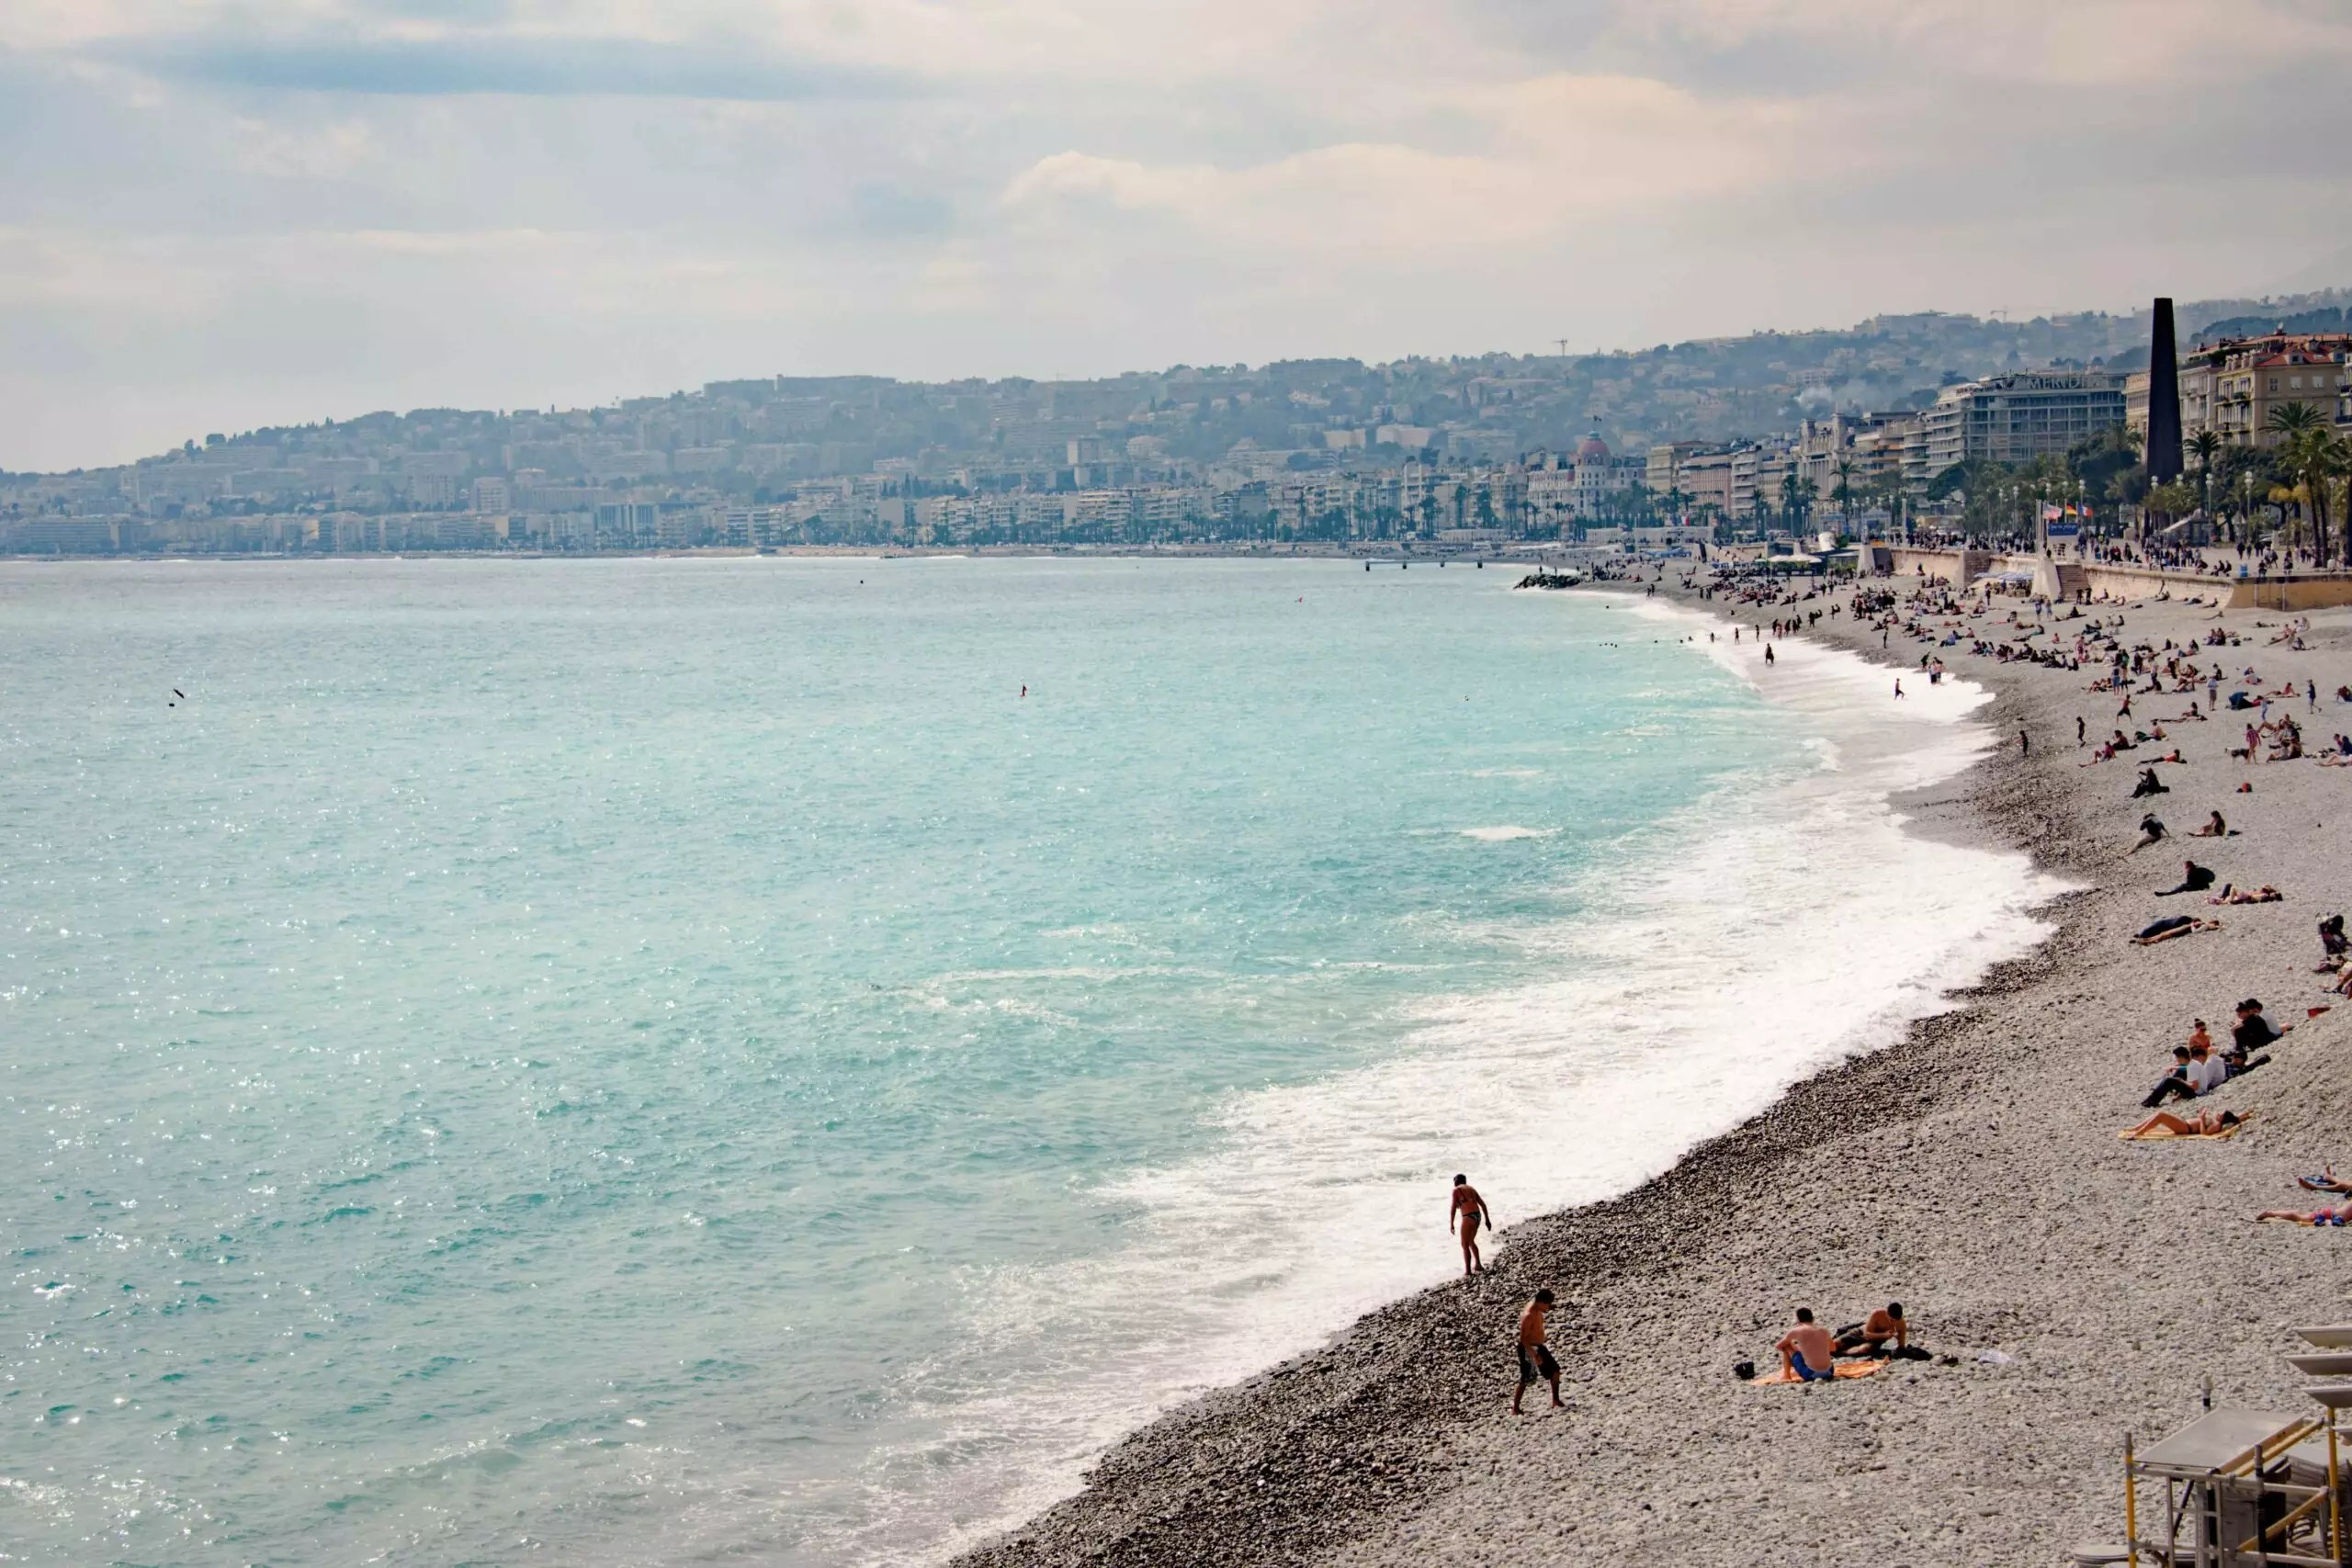 Nice, France - Luxury Holidays are Within Reach! - Things to do in NiceThings to do in Nice - Things to do in Nice